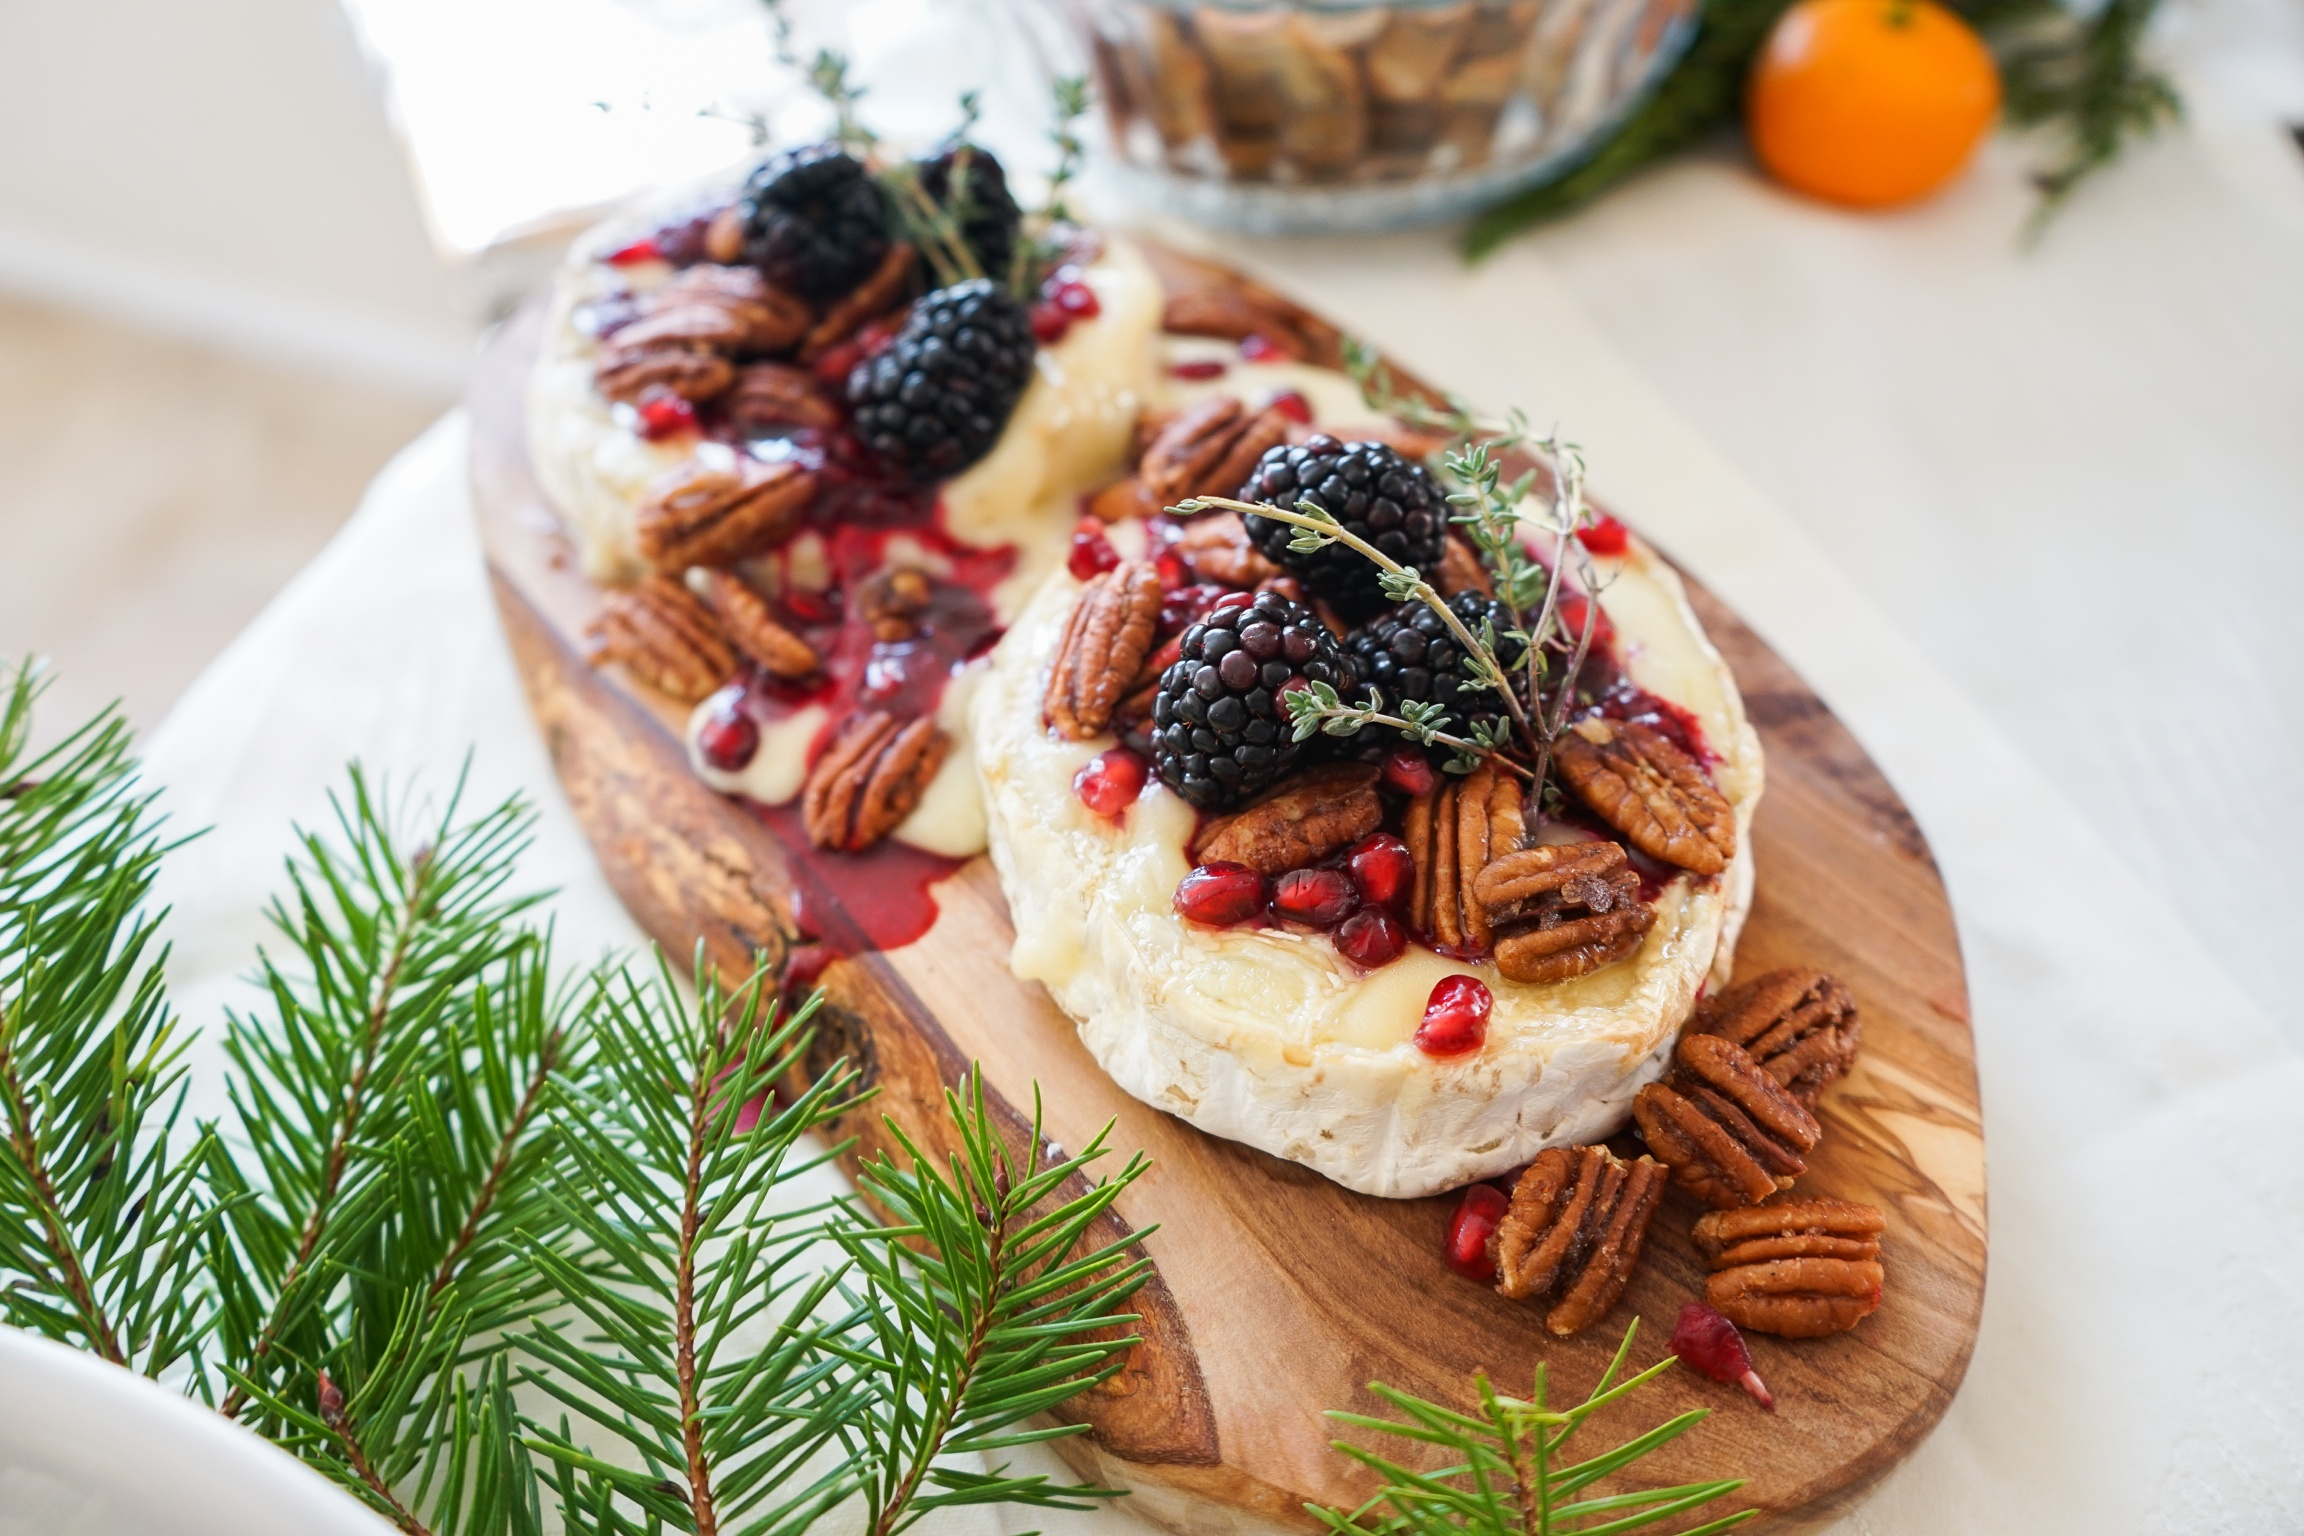 Baked brie with blackberry compote and spiced pecans